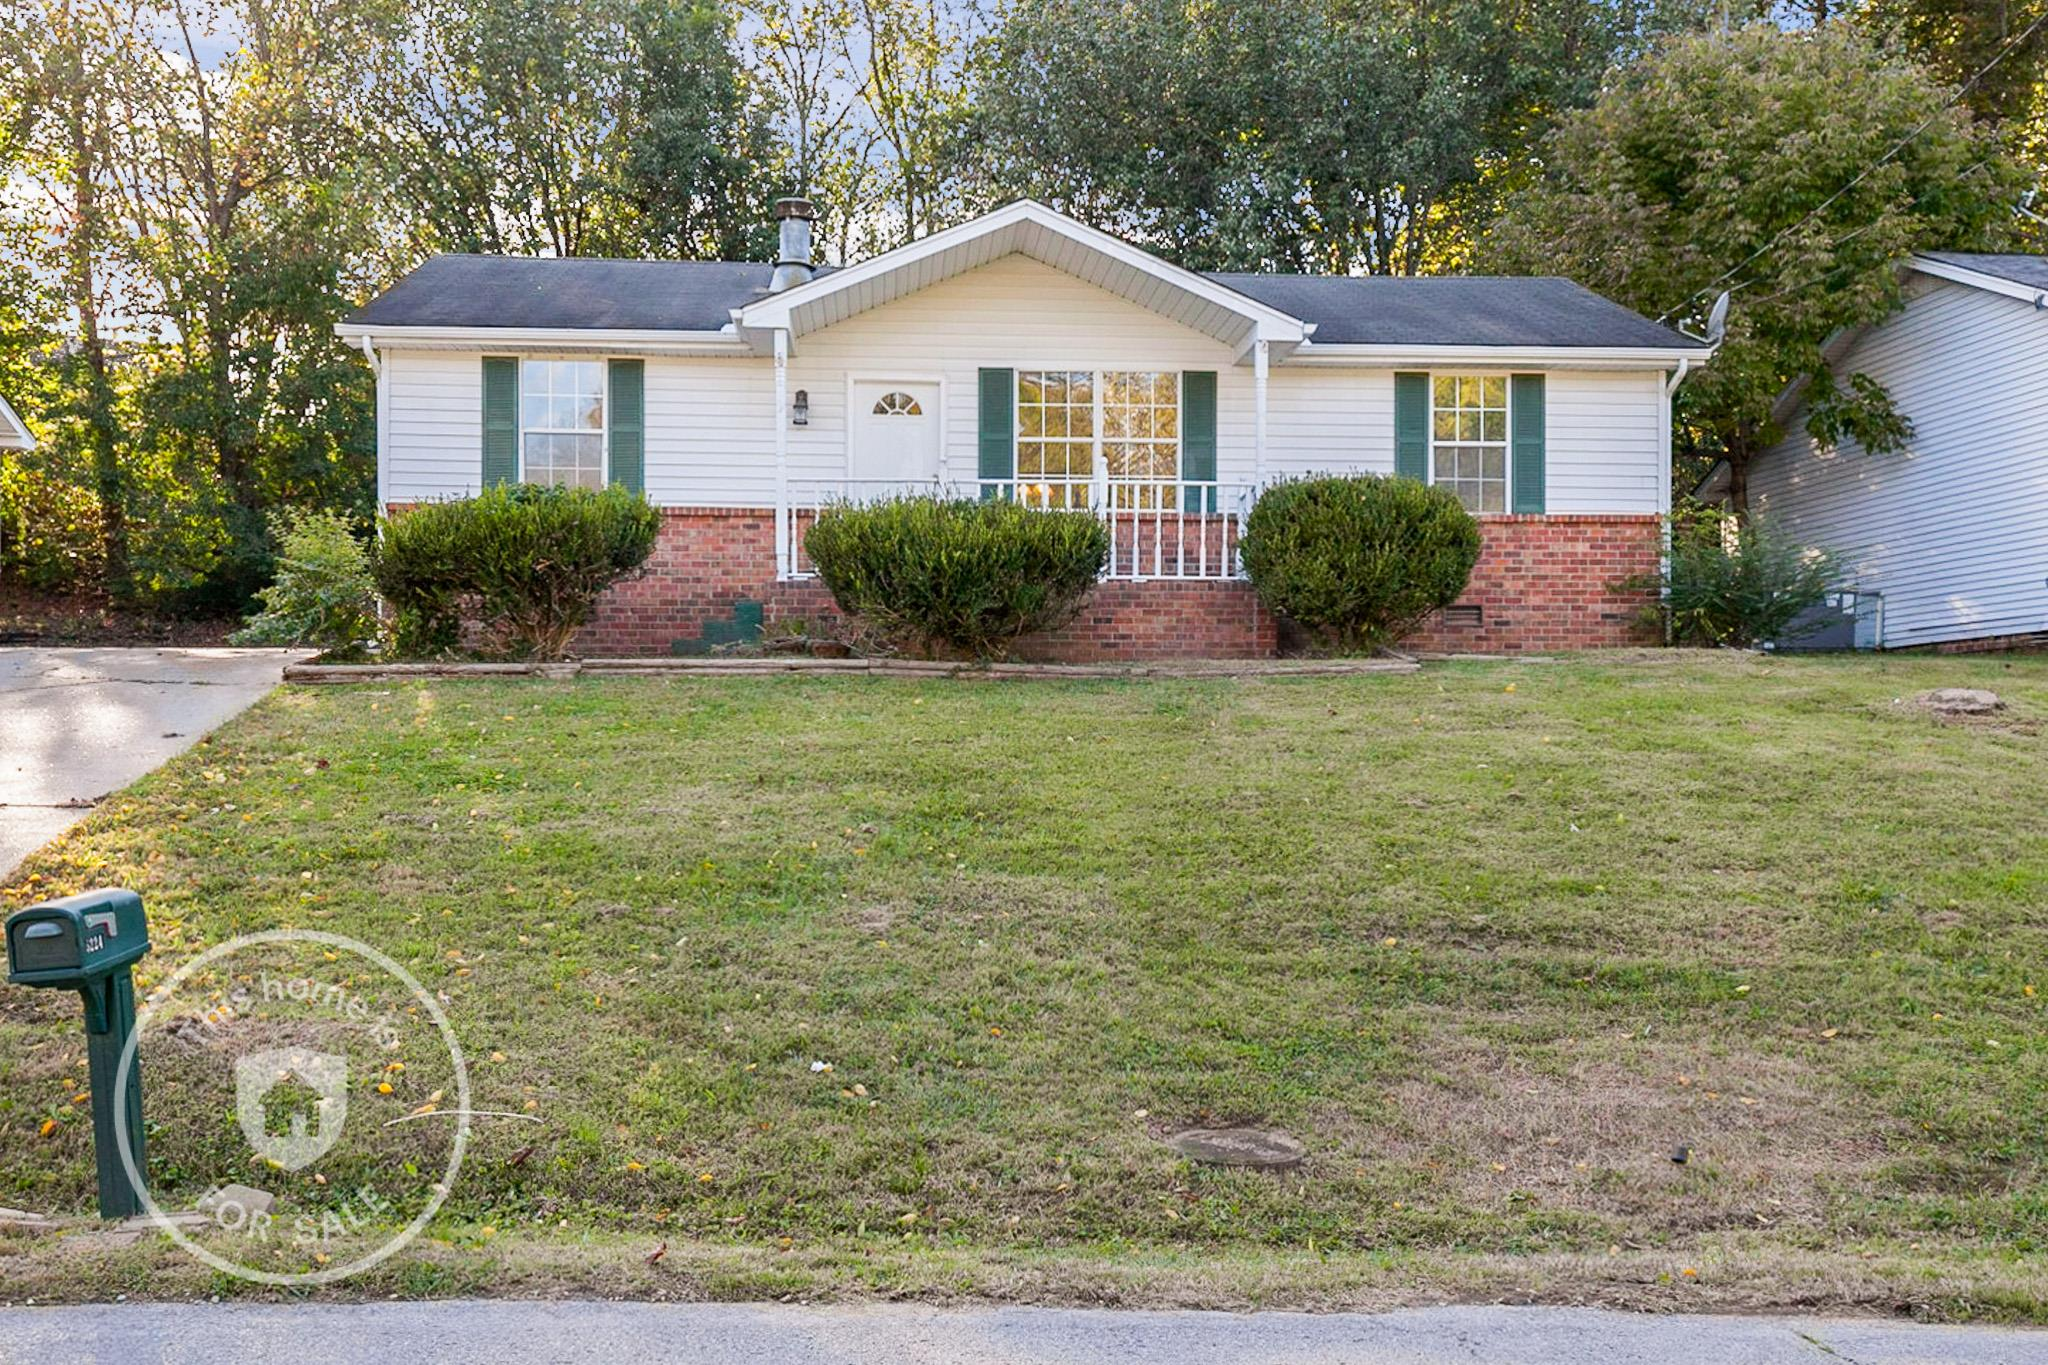 5224 Rice Rd, Nashville-Antioch in Davidson County County, TN 37013 Home for Sale